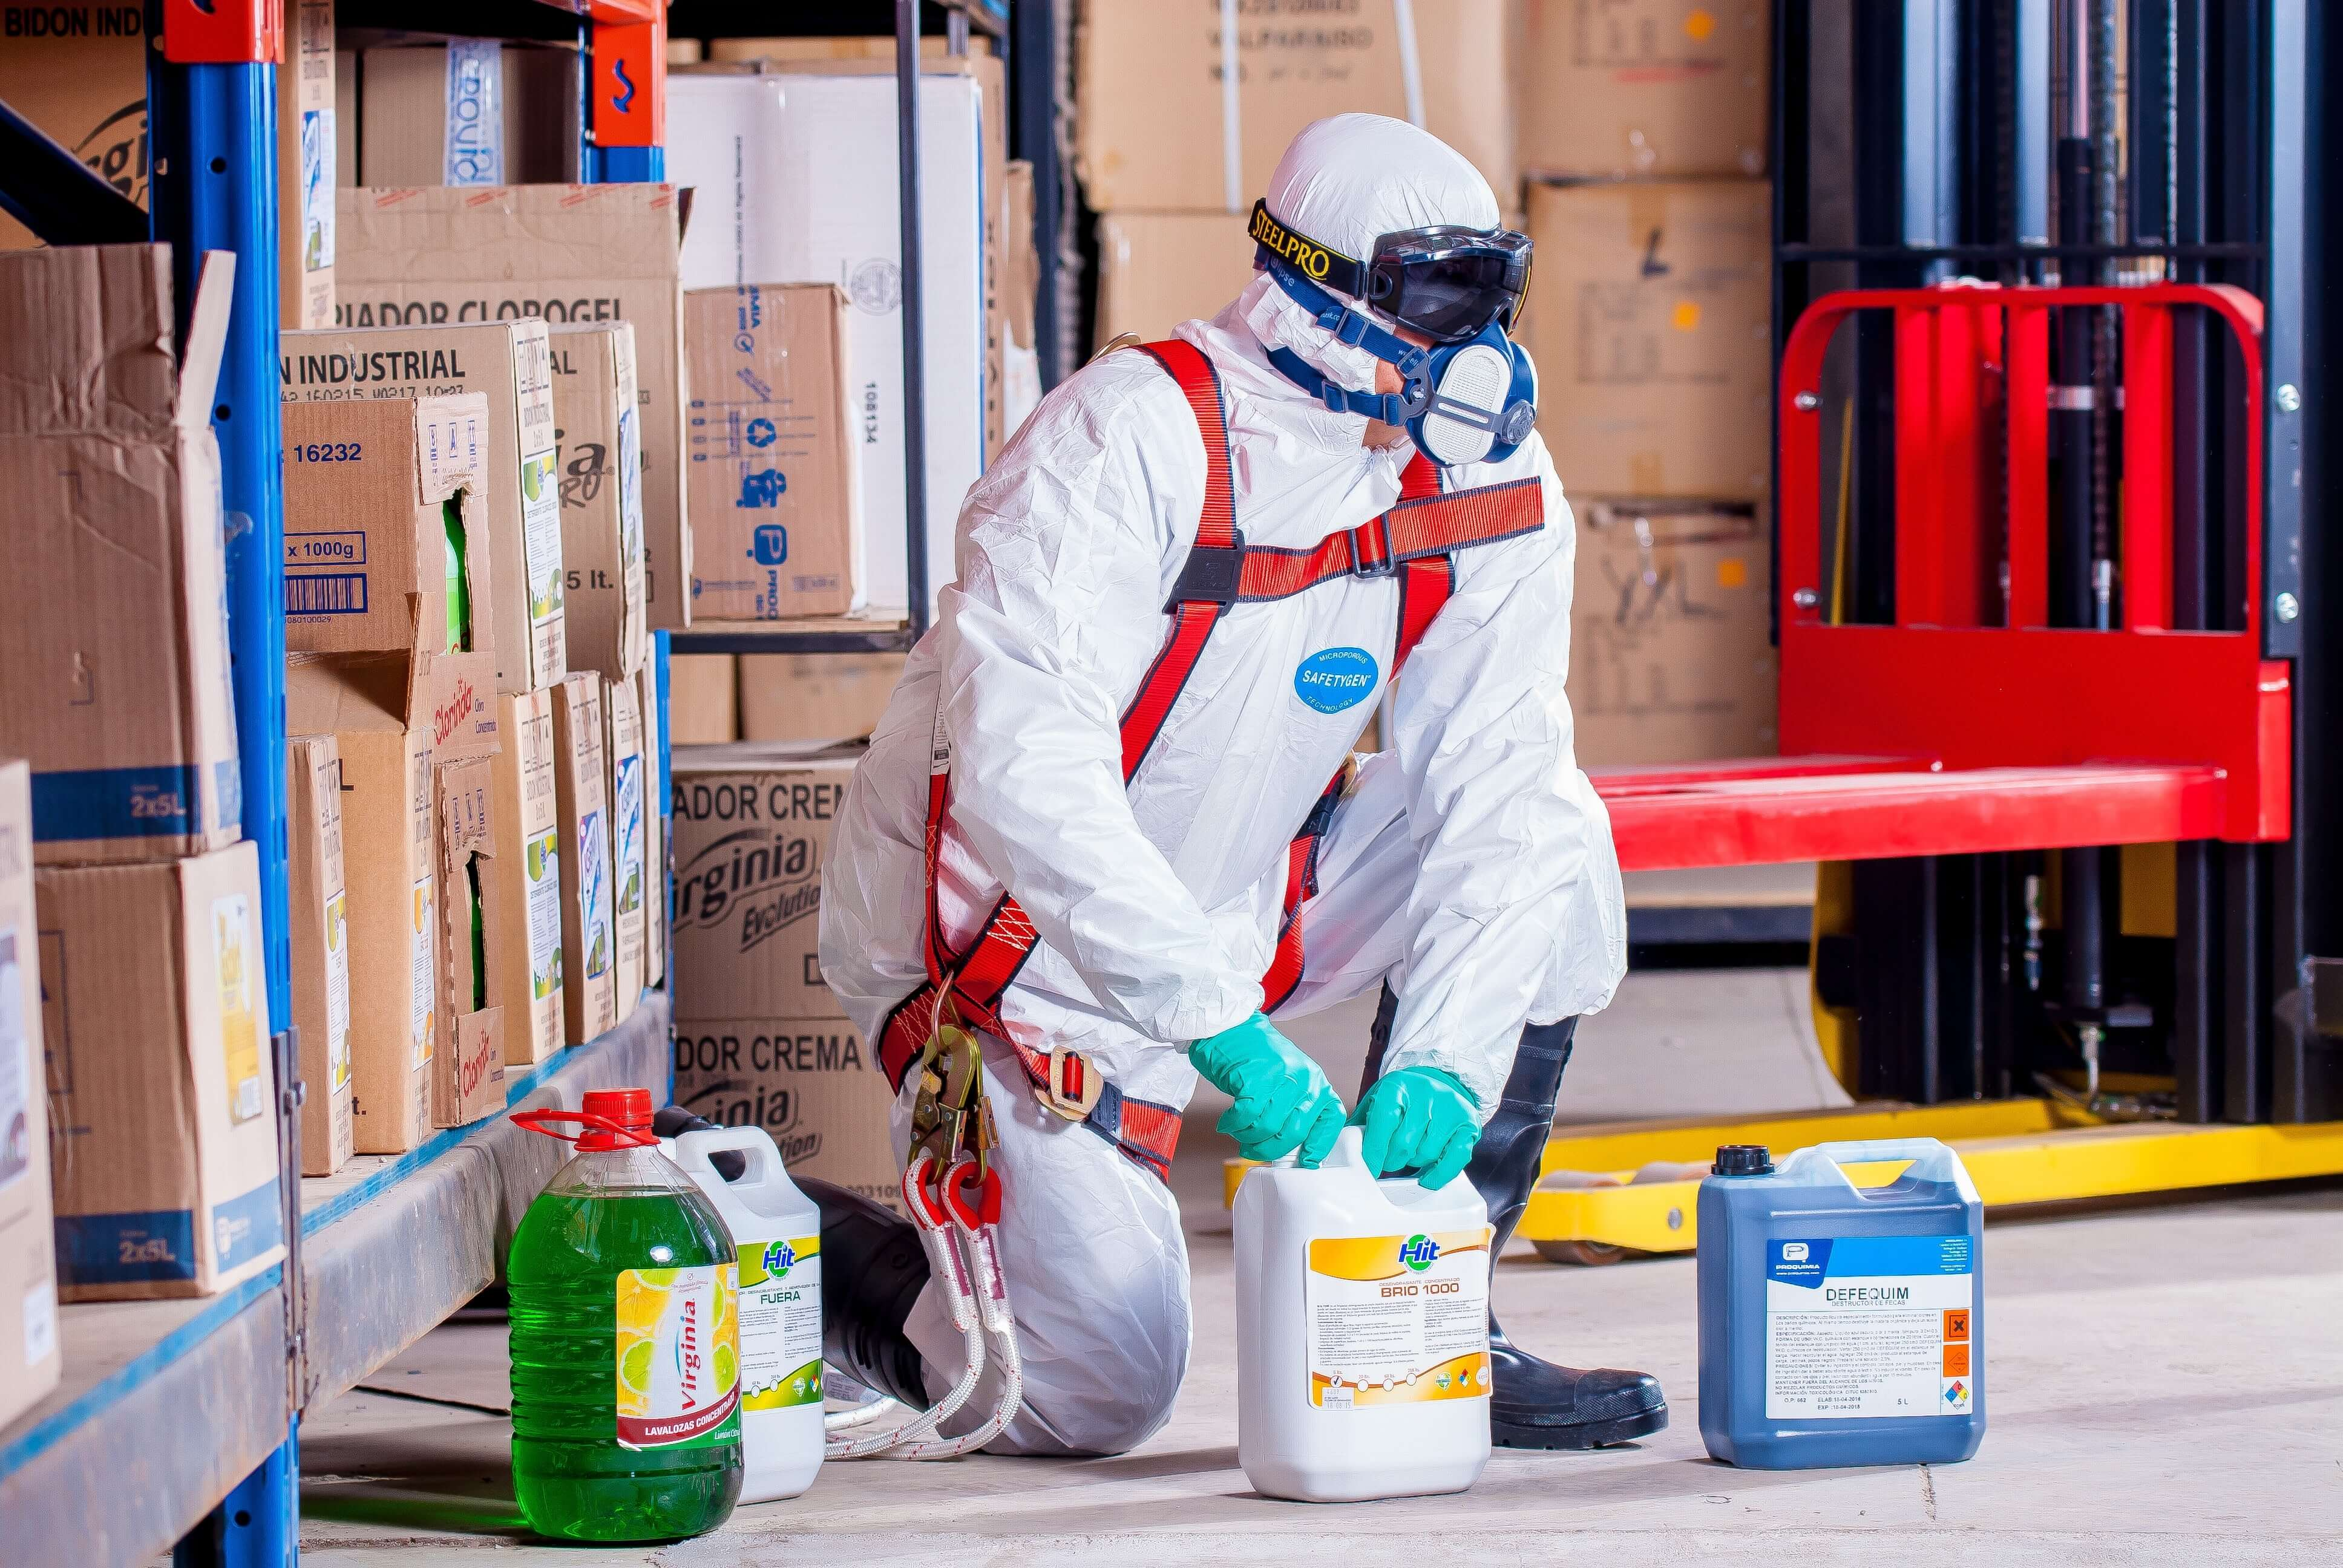 Identify health hazards in the workplace